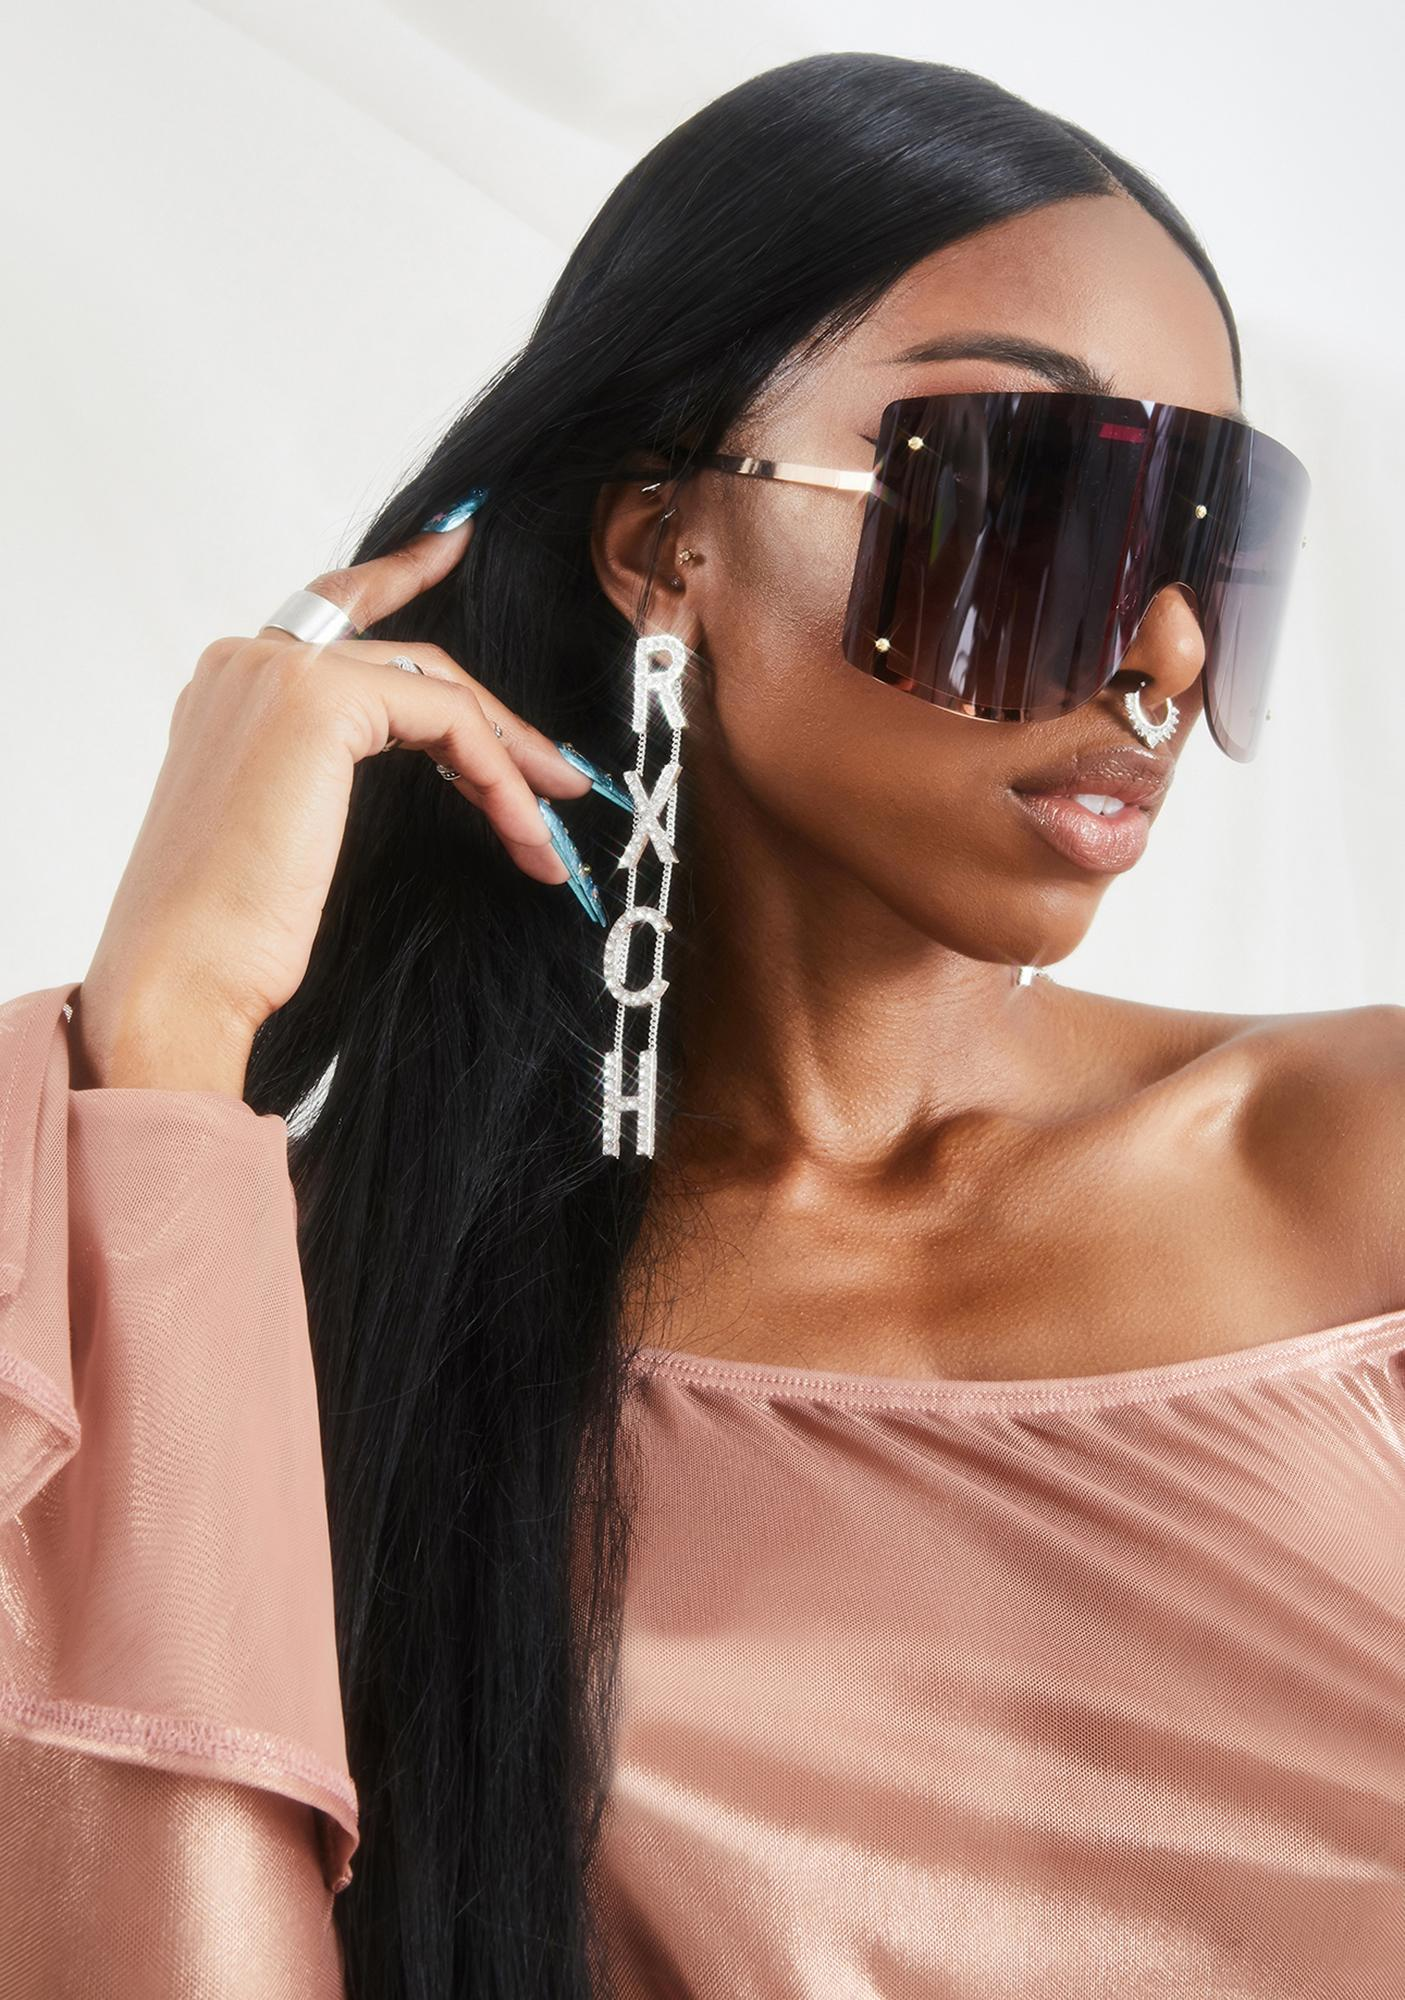 RXCH Rxch Bxtch Earrings